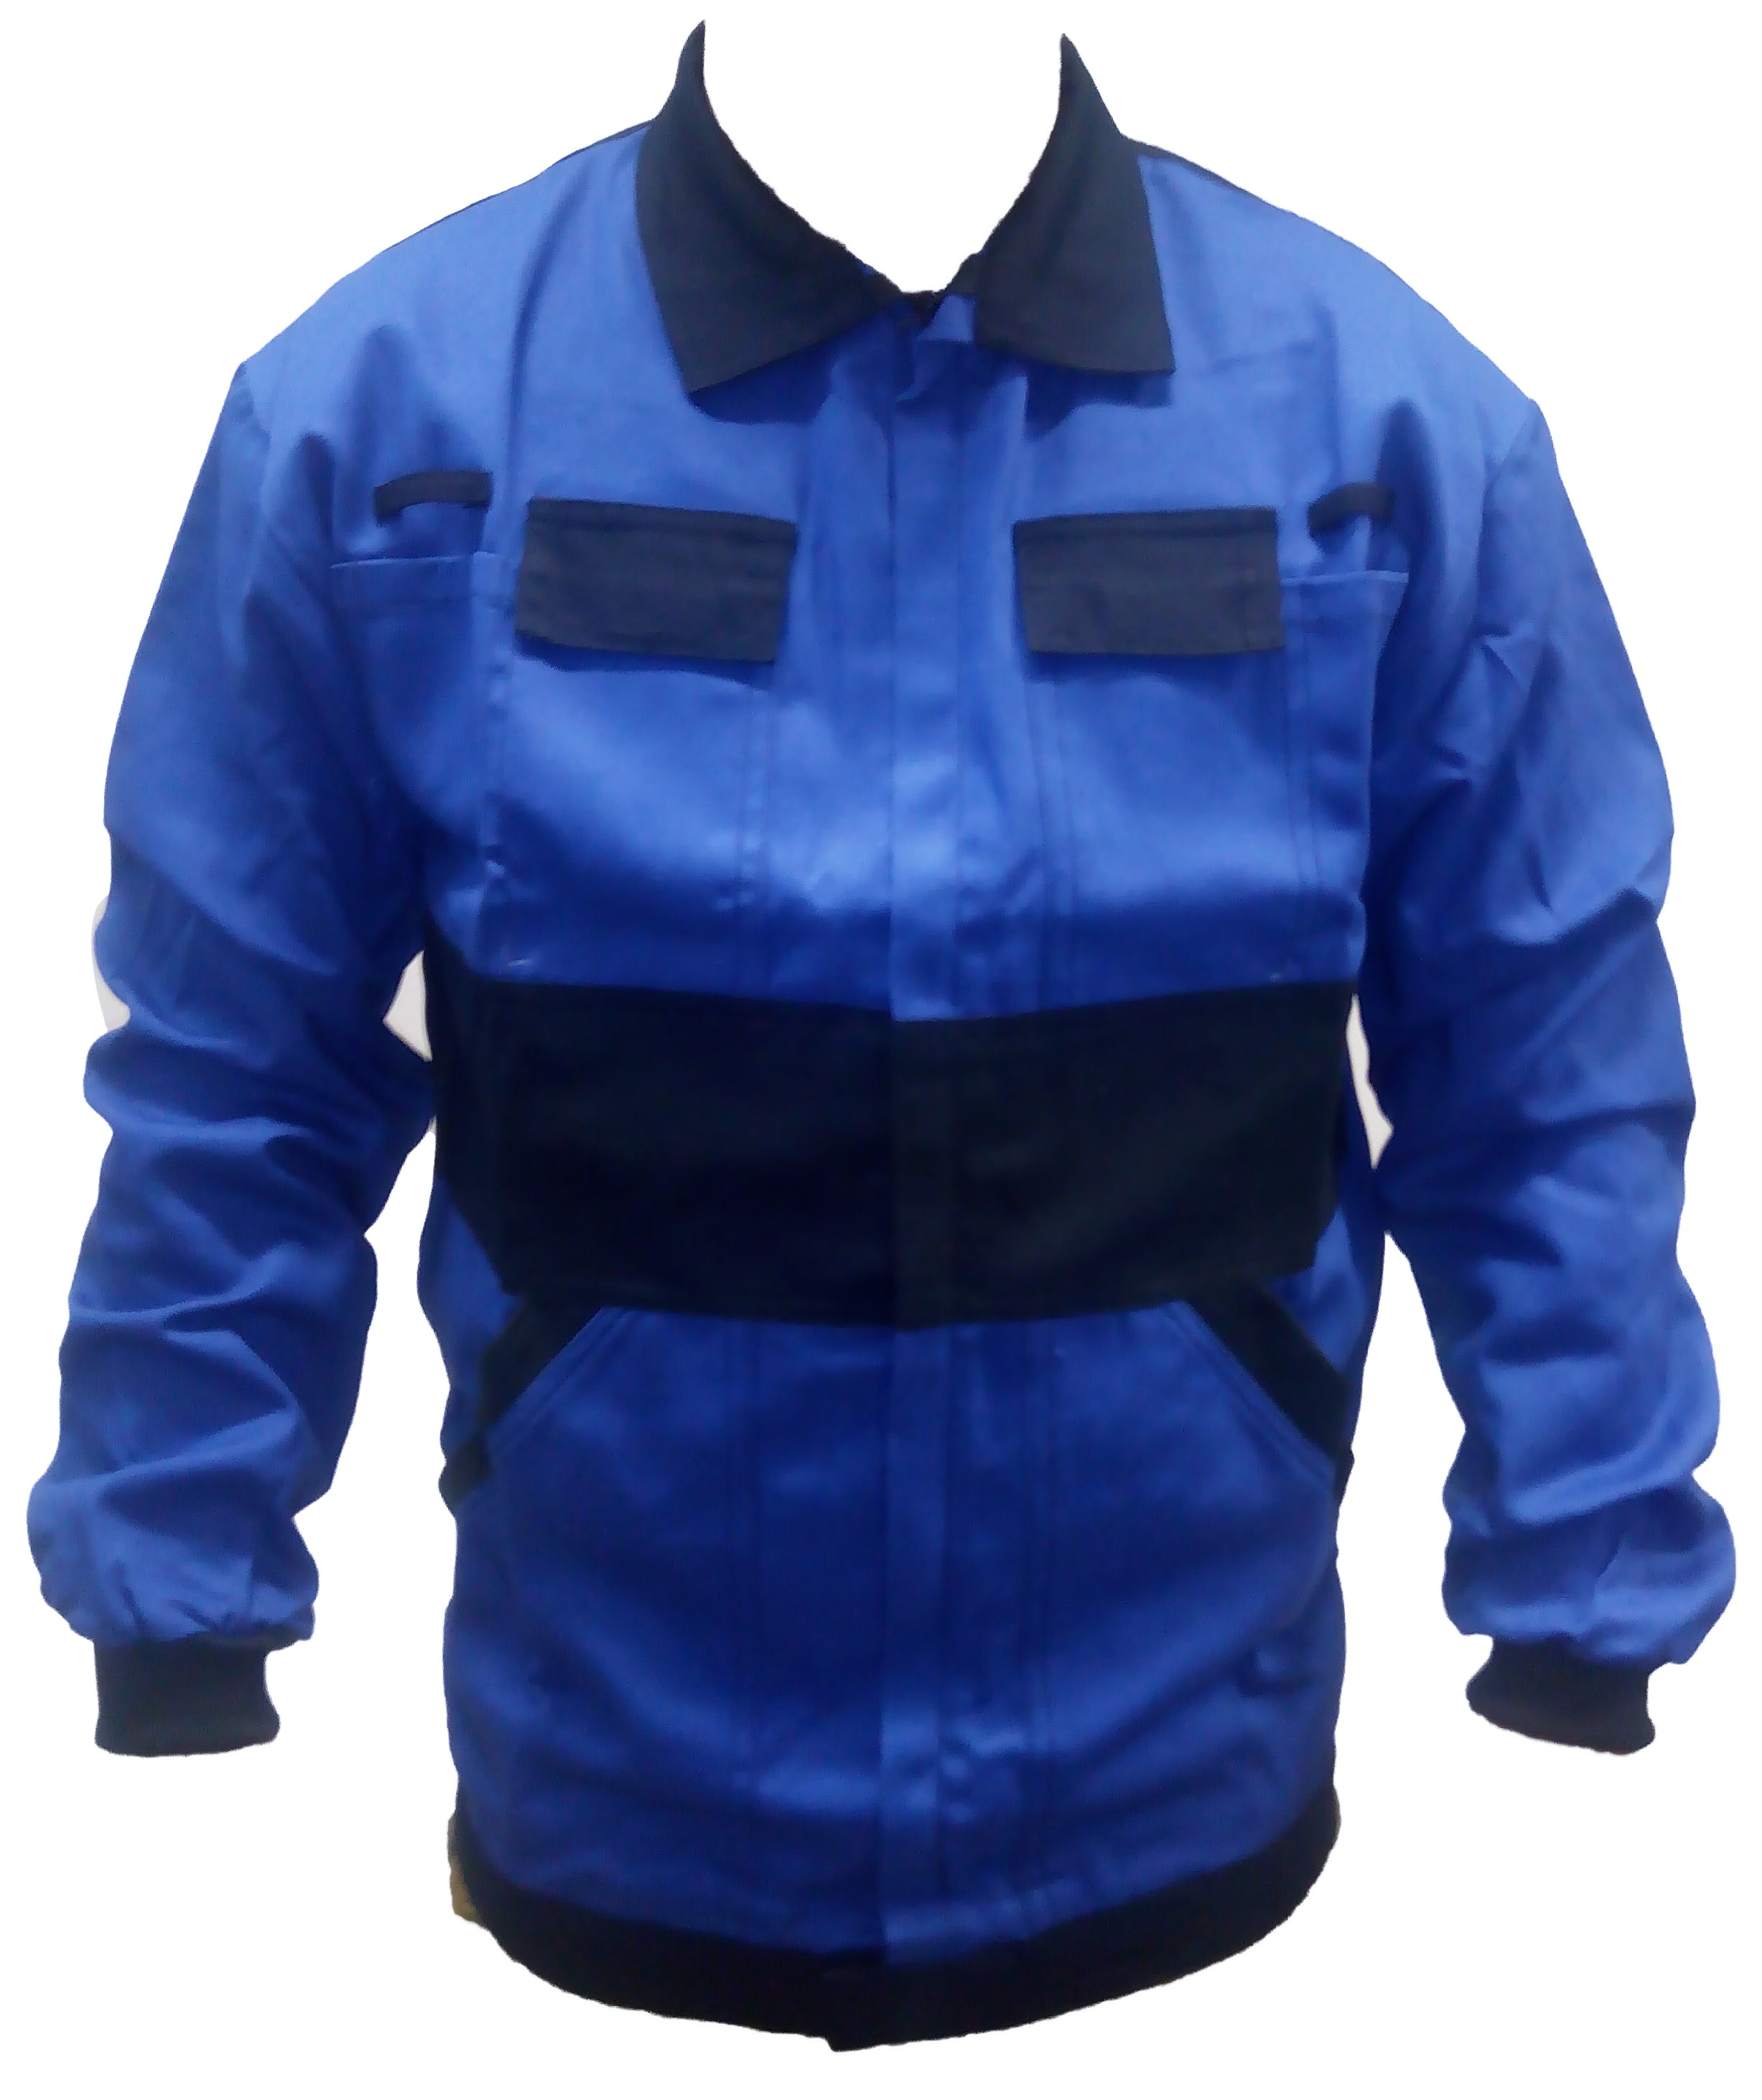 Promo: Prime DEX 101-006 Blue - Black Jacket